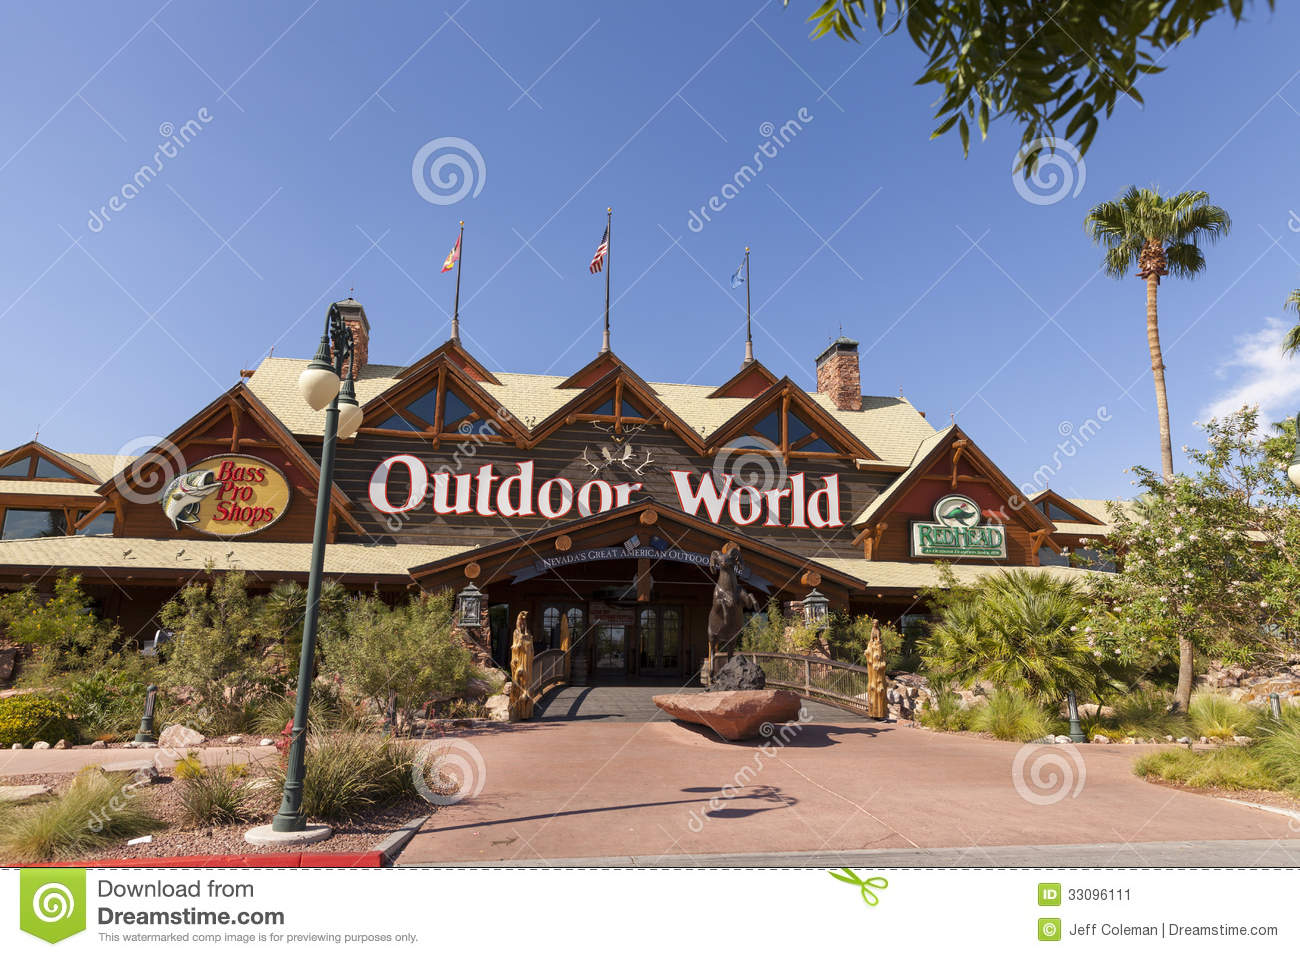 Bass Pro Shop at the Silverton hotel in Las Vegas, NV on August